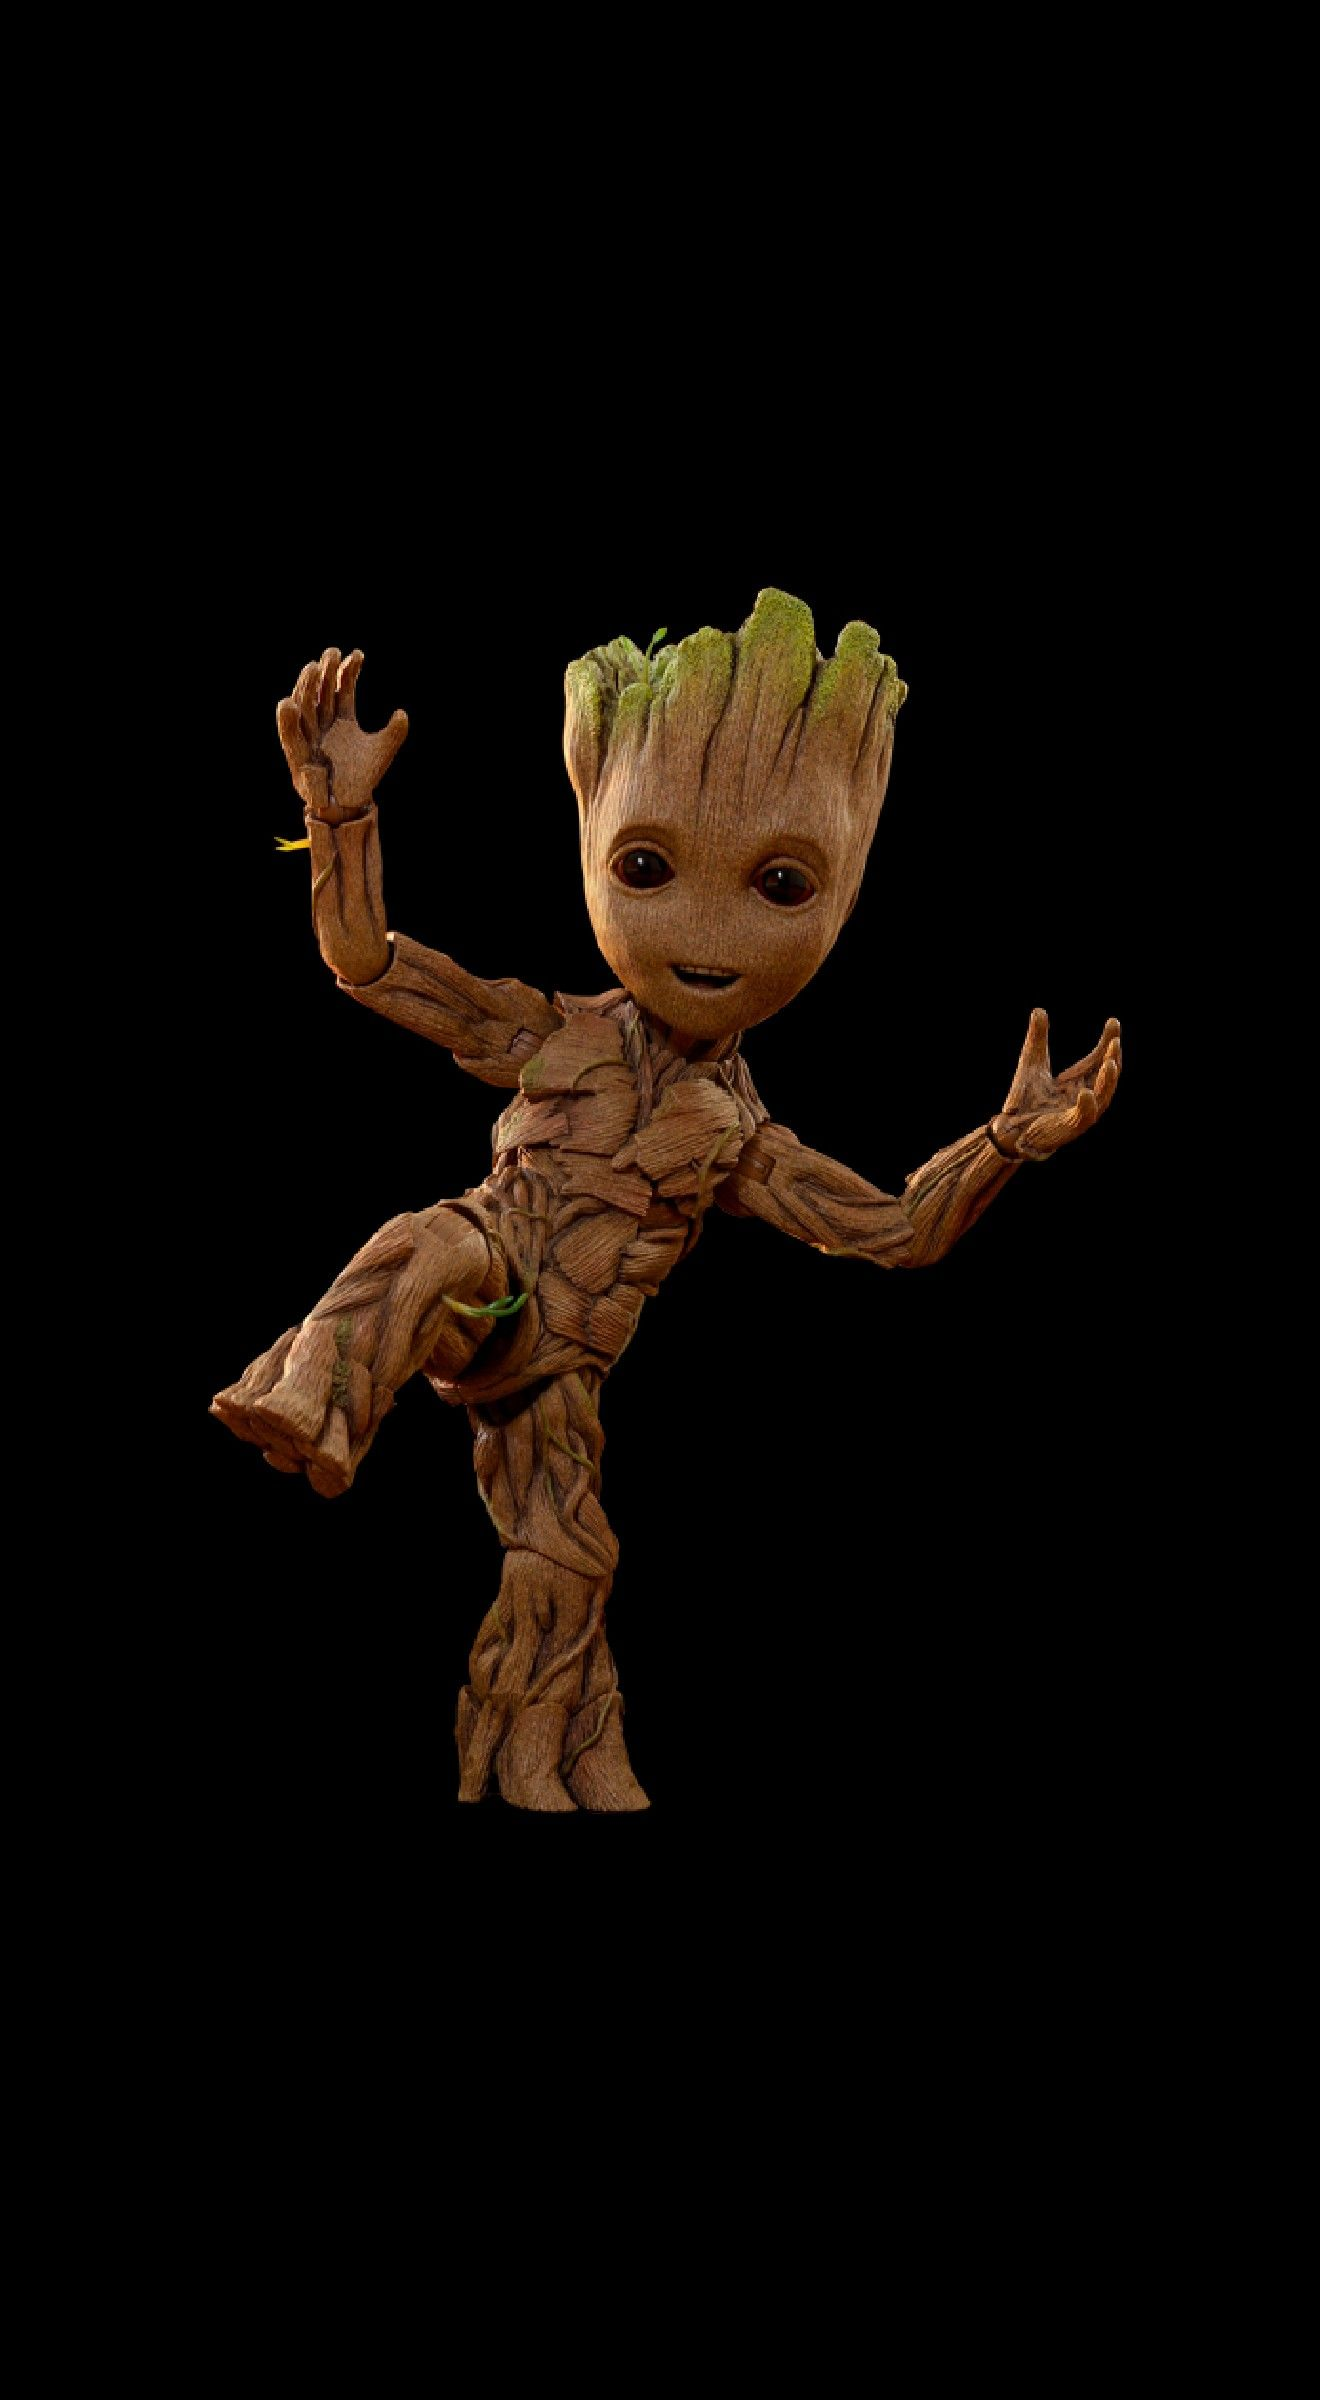 Wallpaper Amoled Iphone Groot Groot Marvel Superhero Wallpaper Marvel Wallpaper